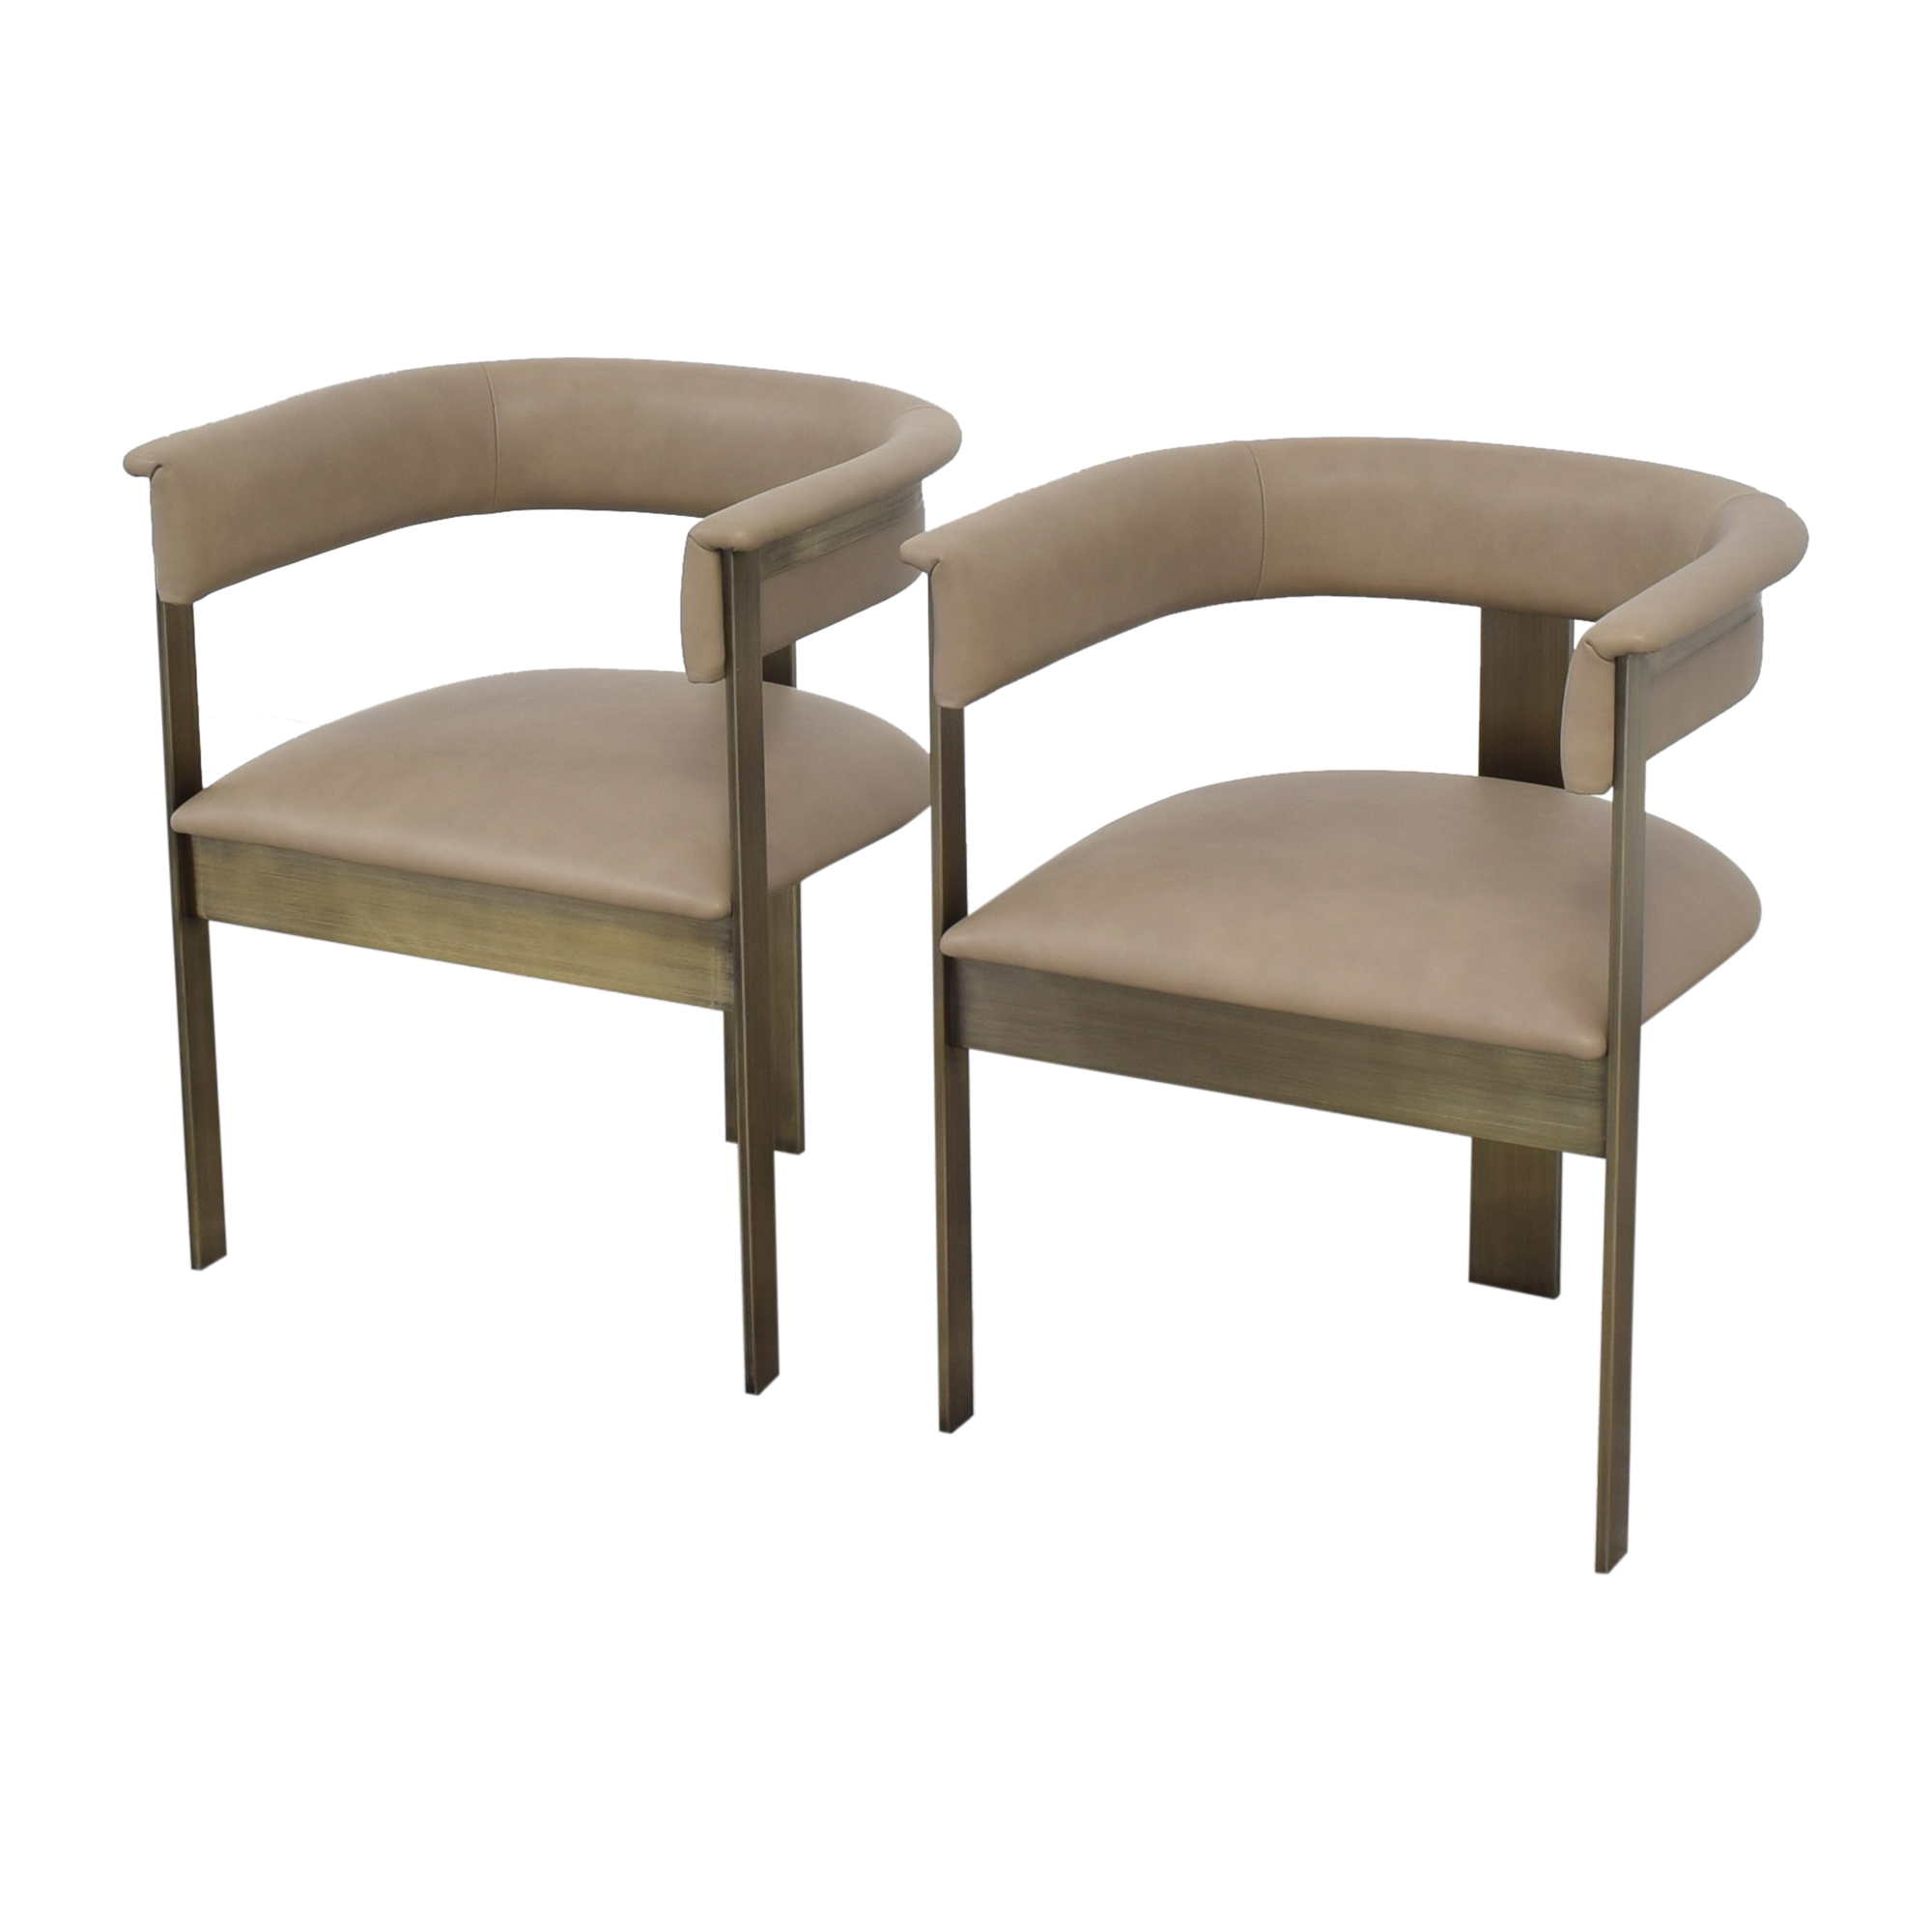 Interlude Home Darcy Dining Arm Chairs / Dining Chairs